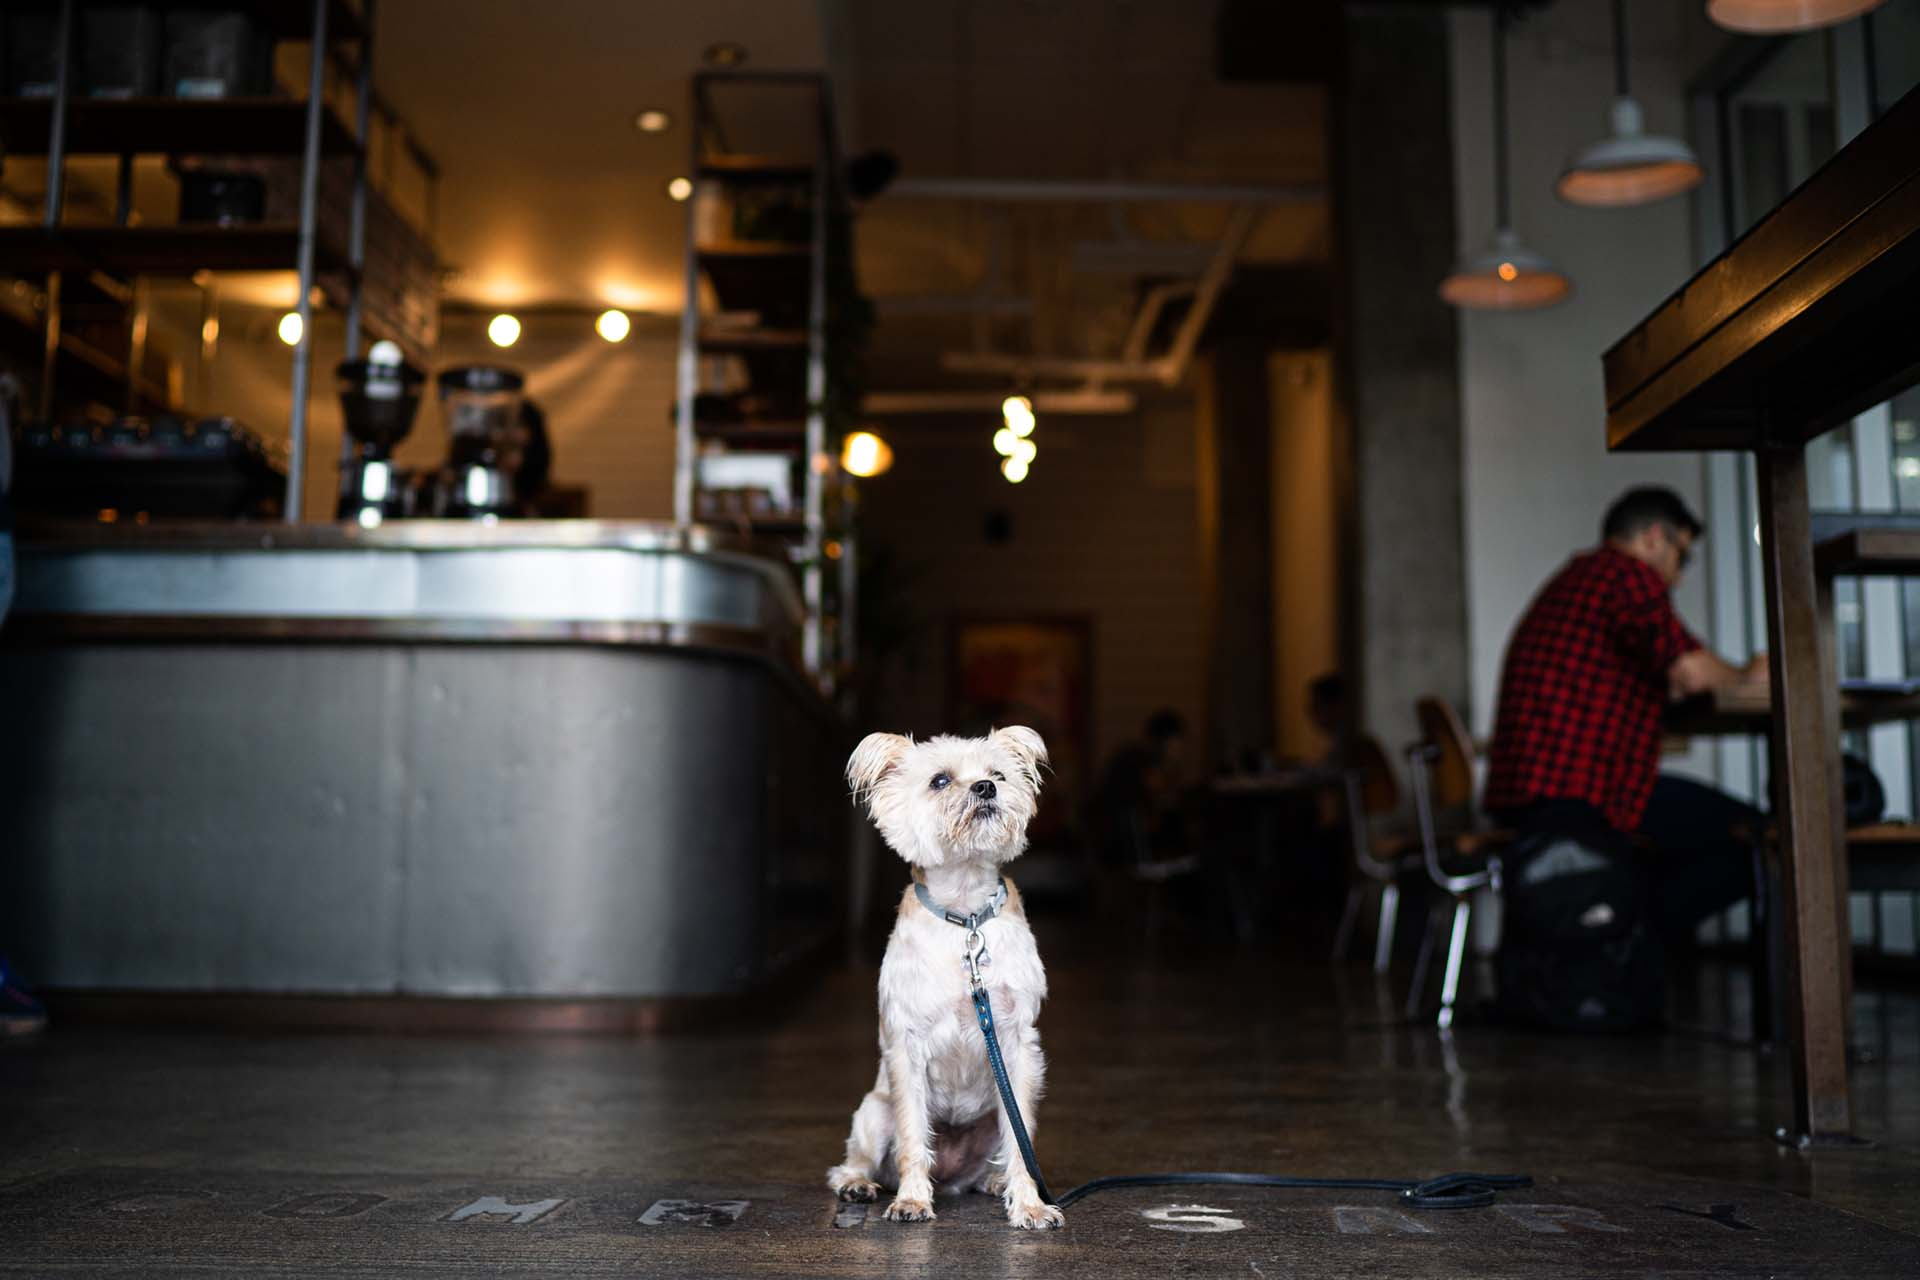 A dog in the Coffee Commissary store